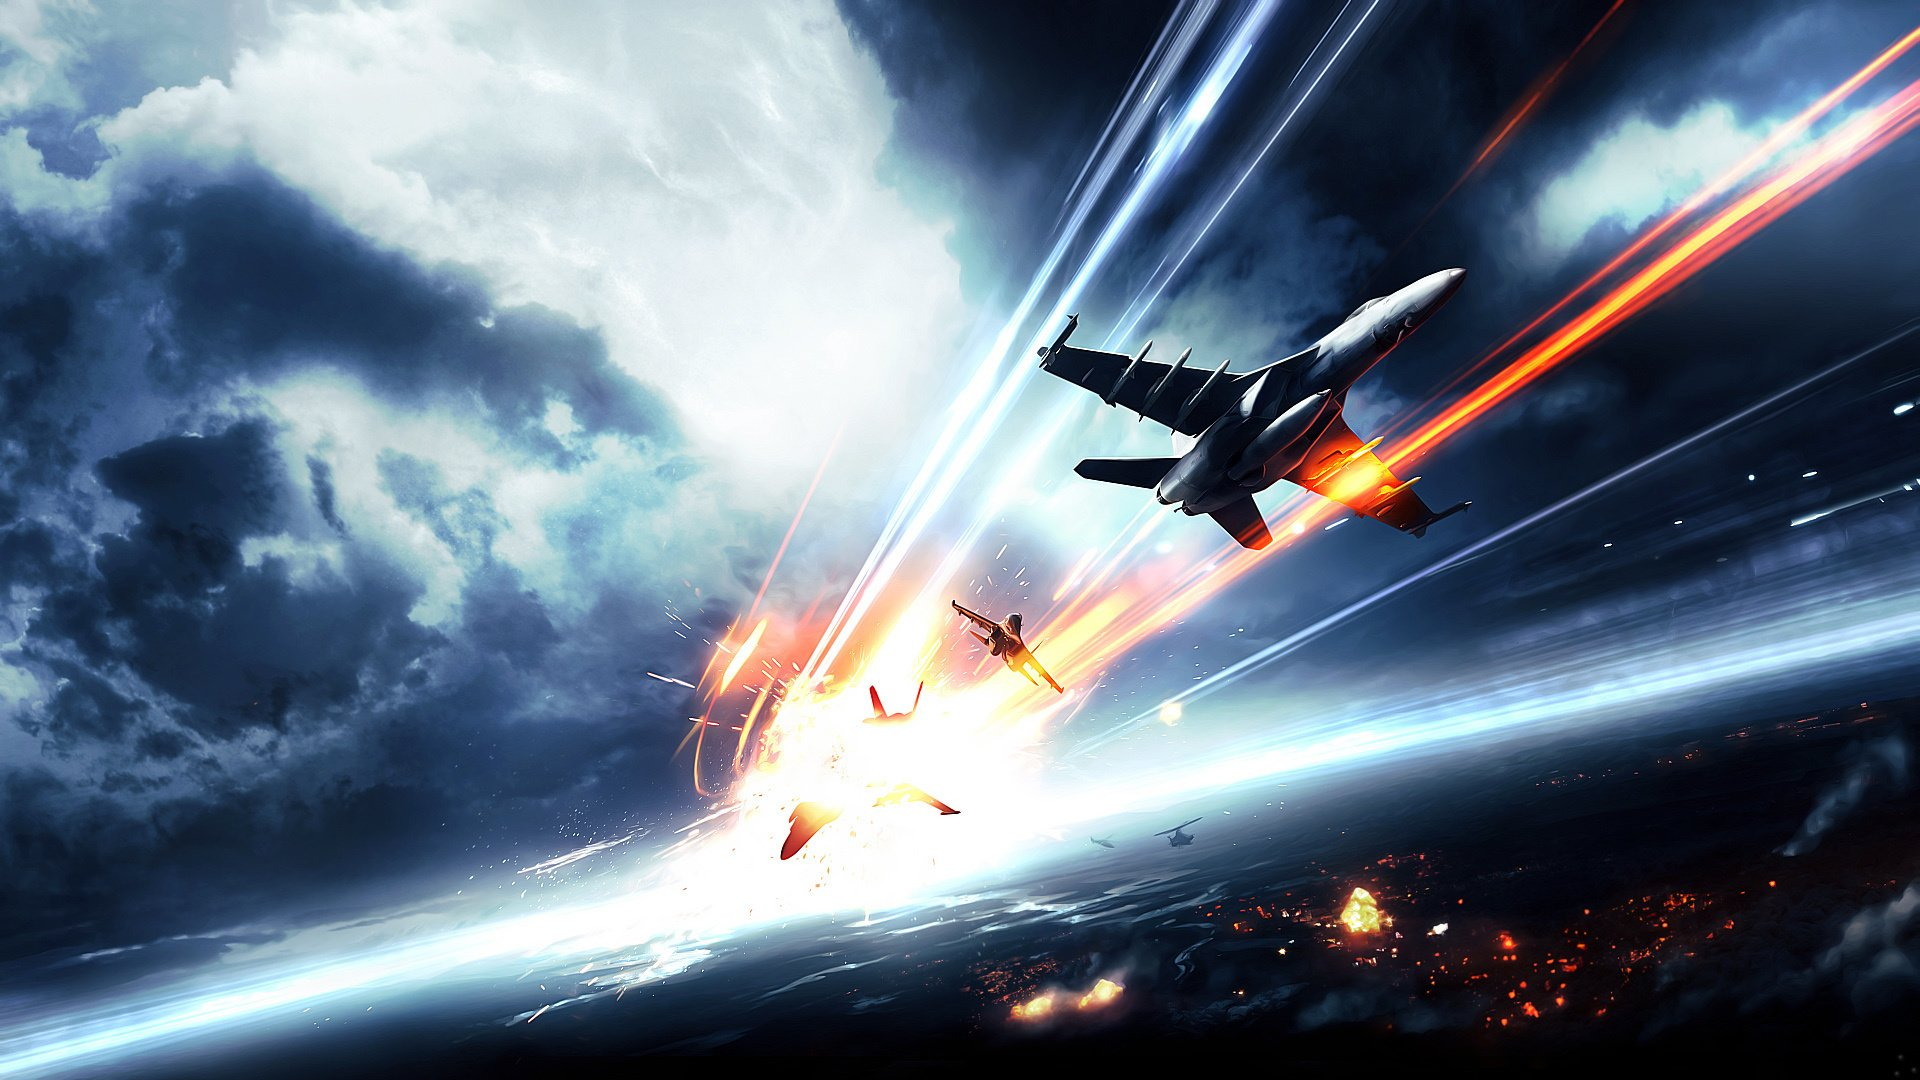 Video Game - Battlefield 4  Battlefield Aircraft Airplane Dogfight Military Jet Fighter Wallpaper